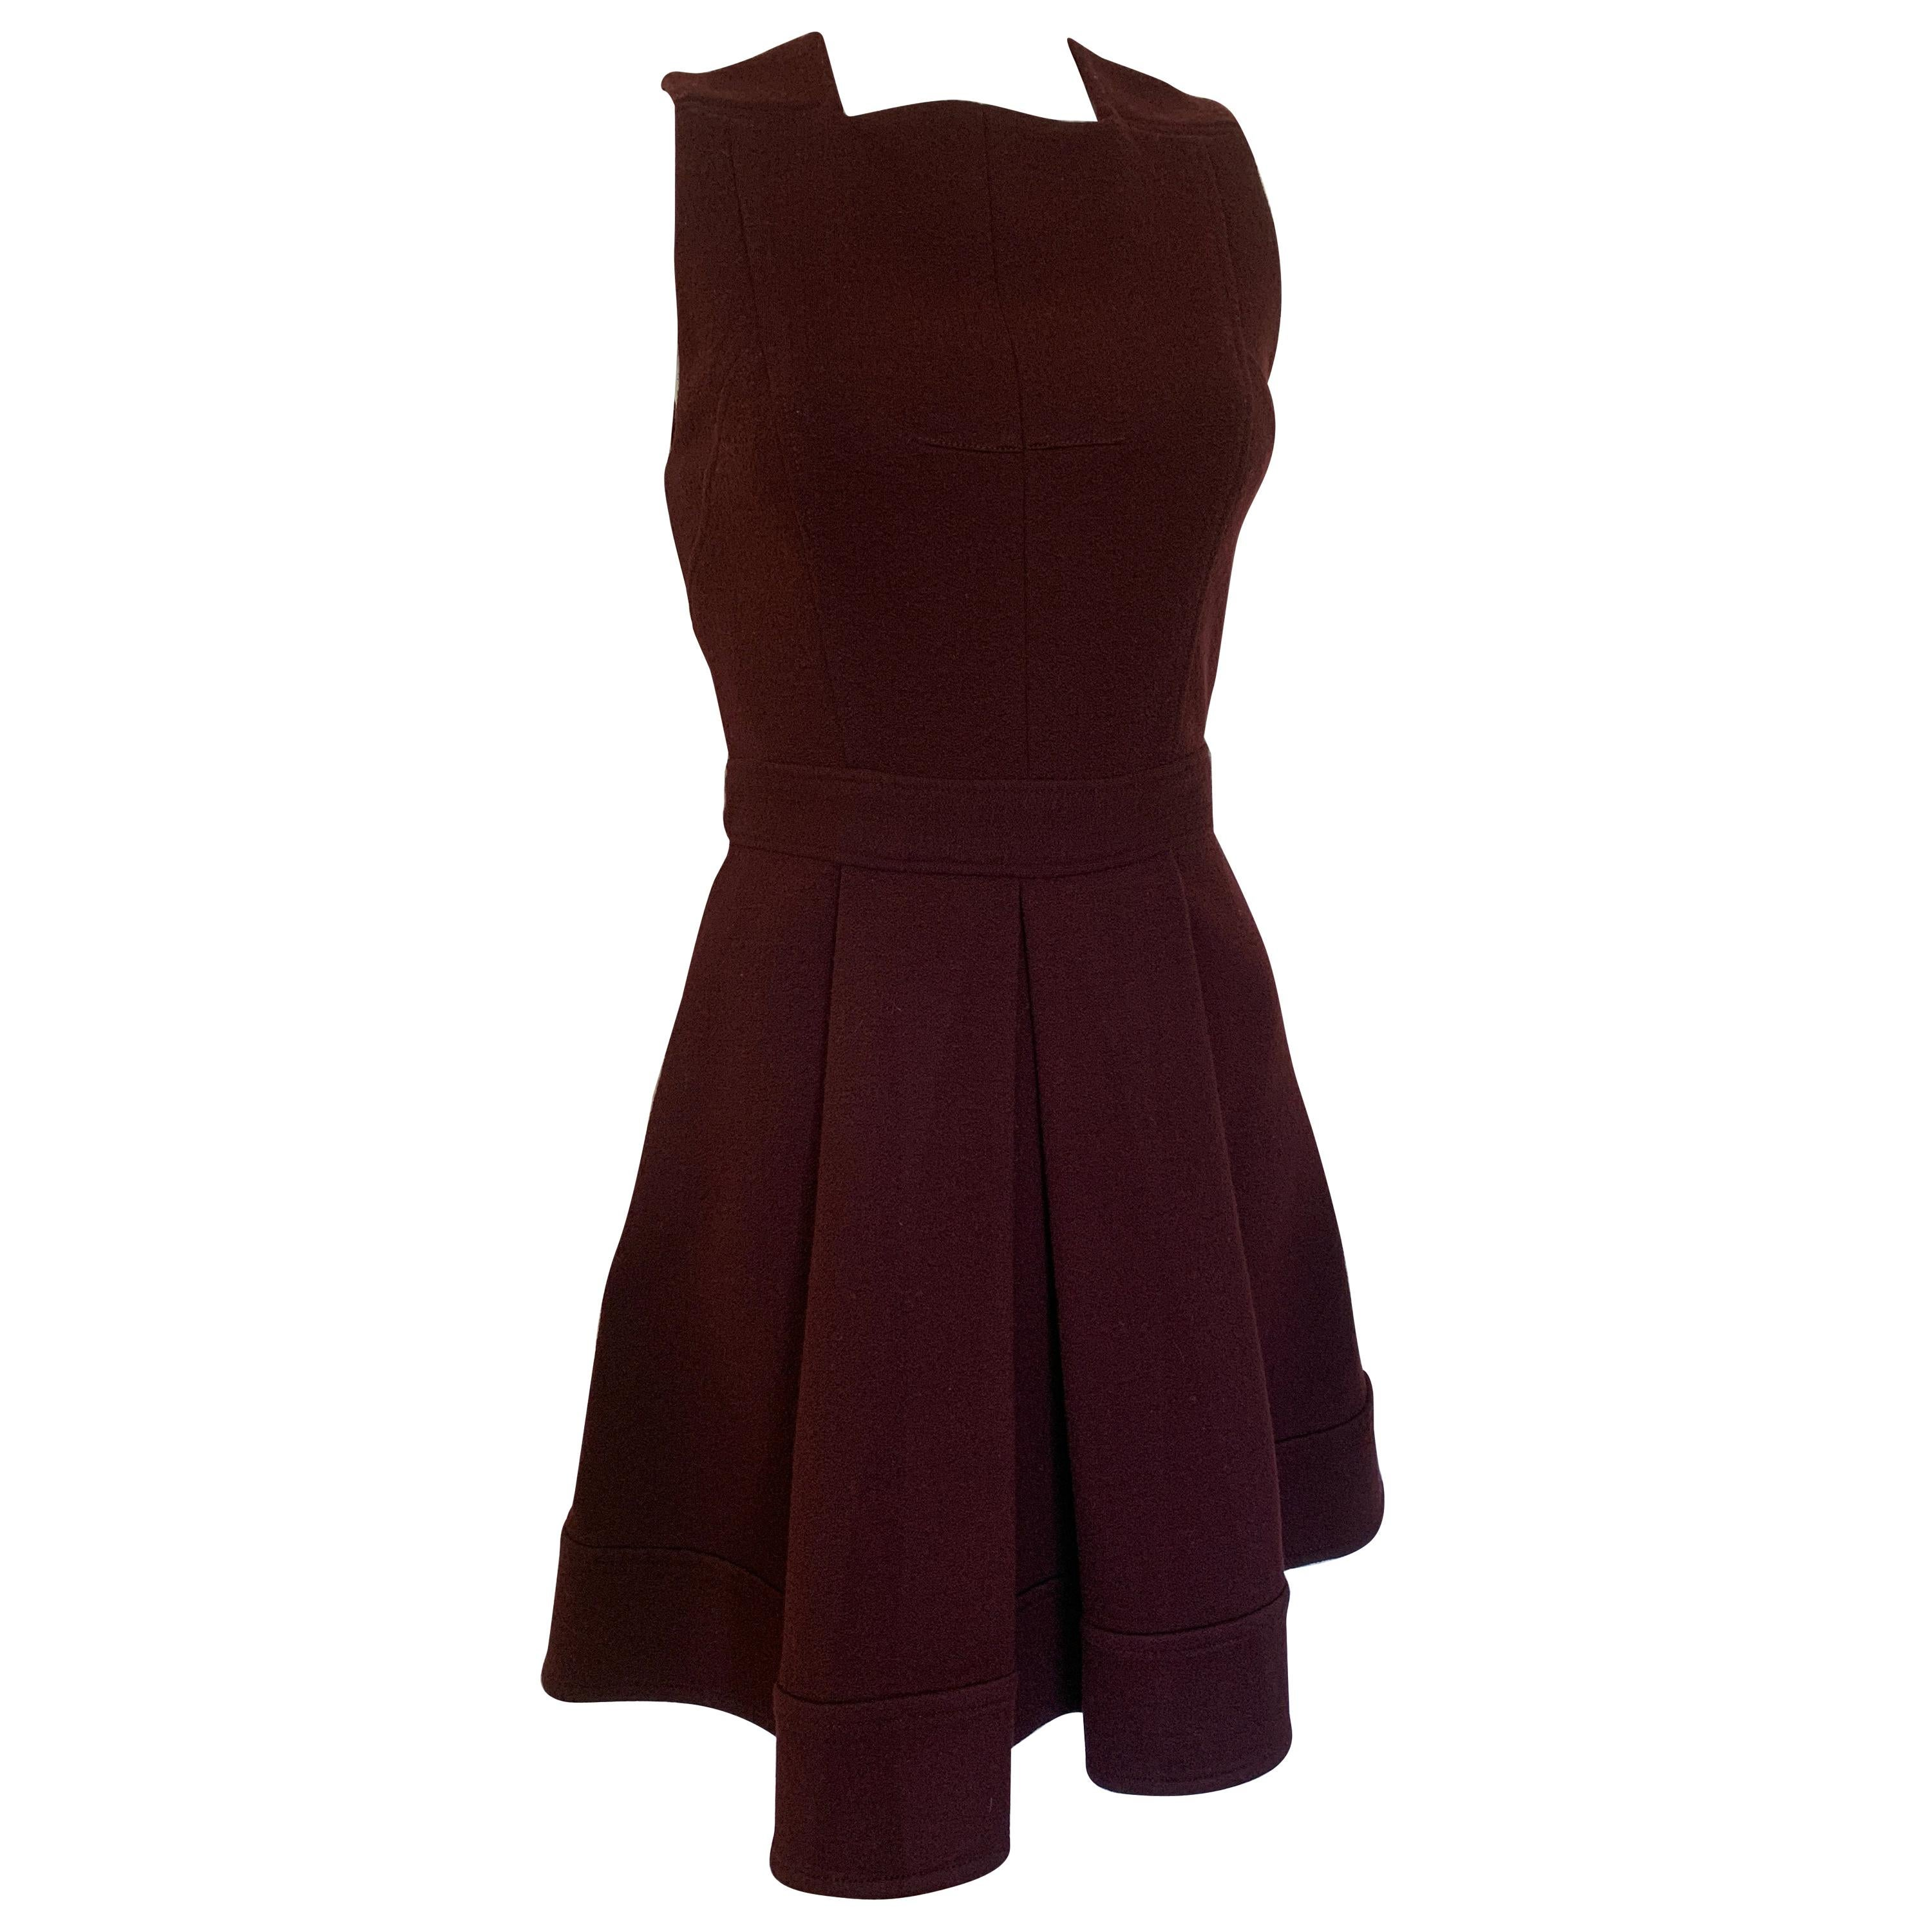 Proenza Shouler Aubergine Fit and Flare Dress Size 4